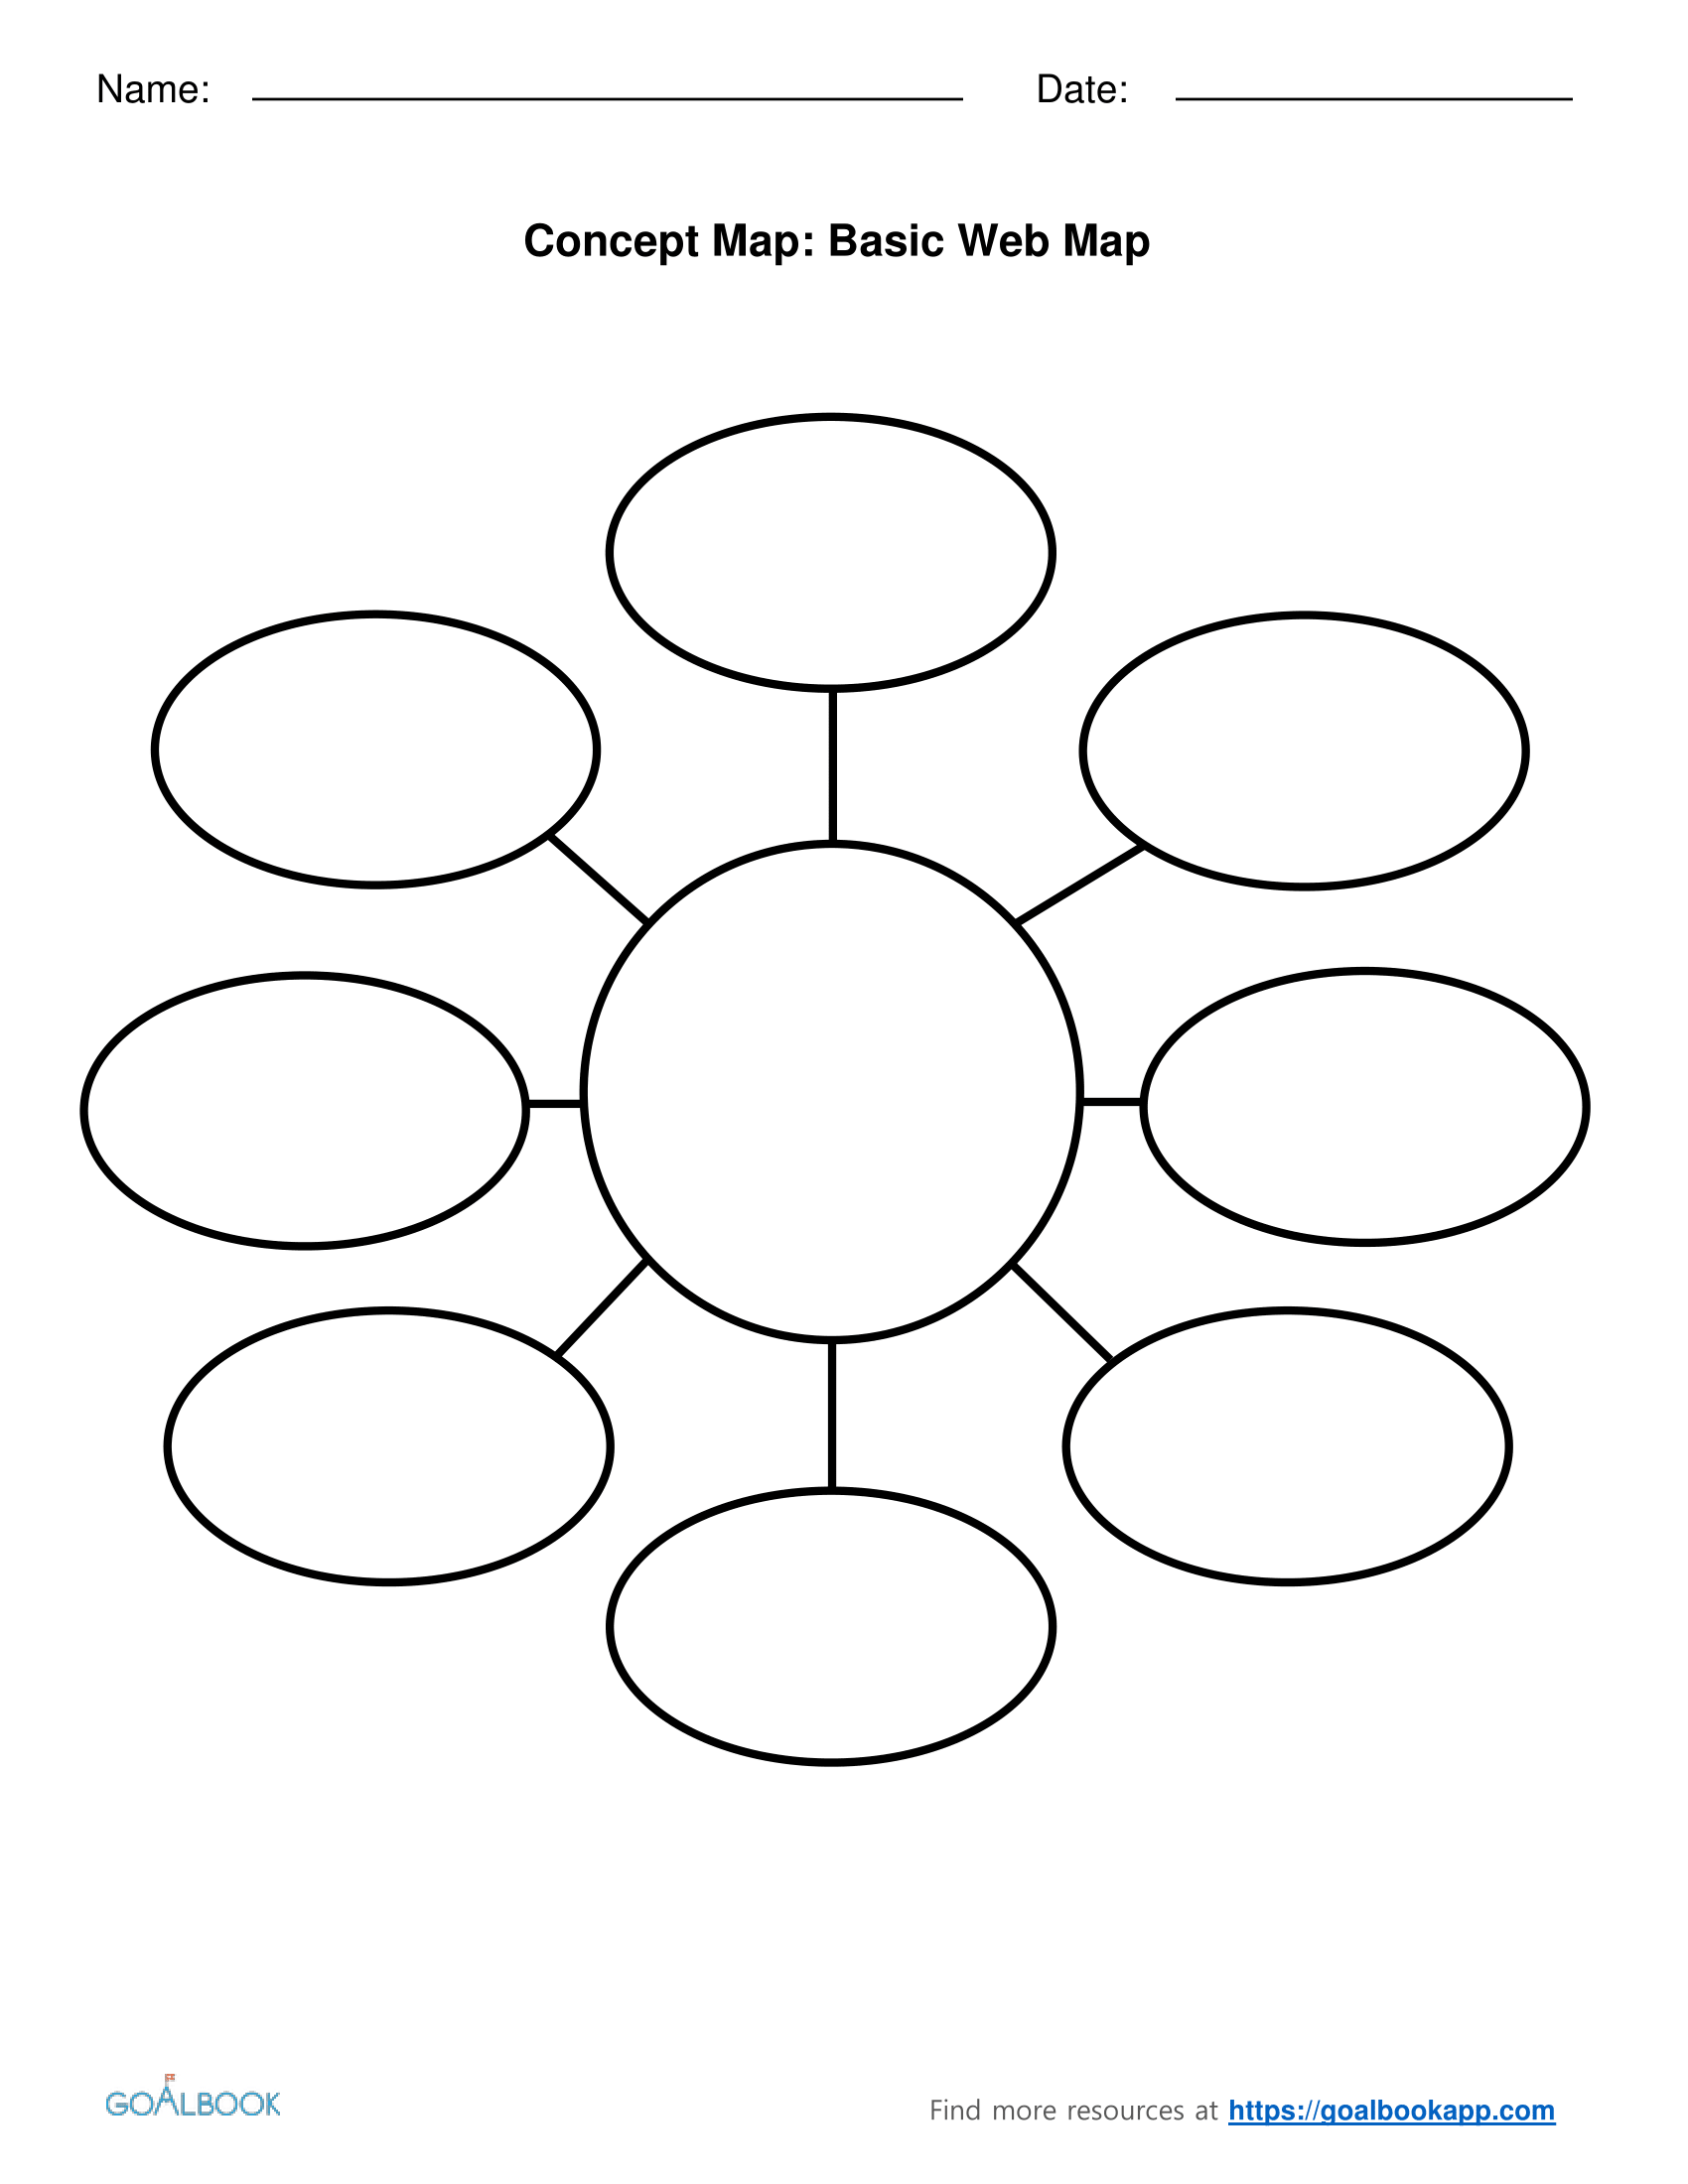 Basic 8-Point Concept Map